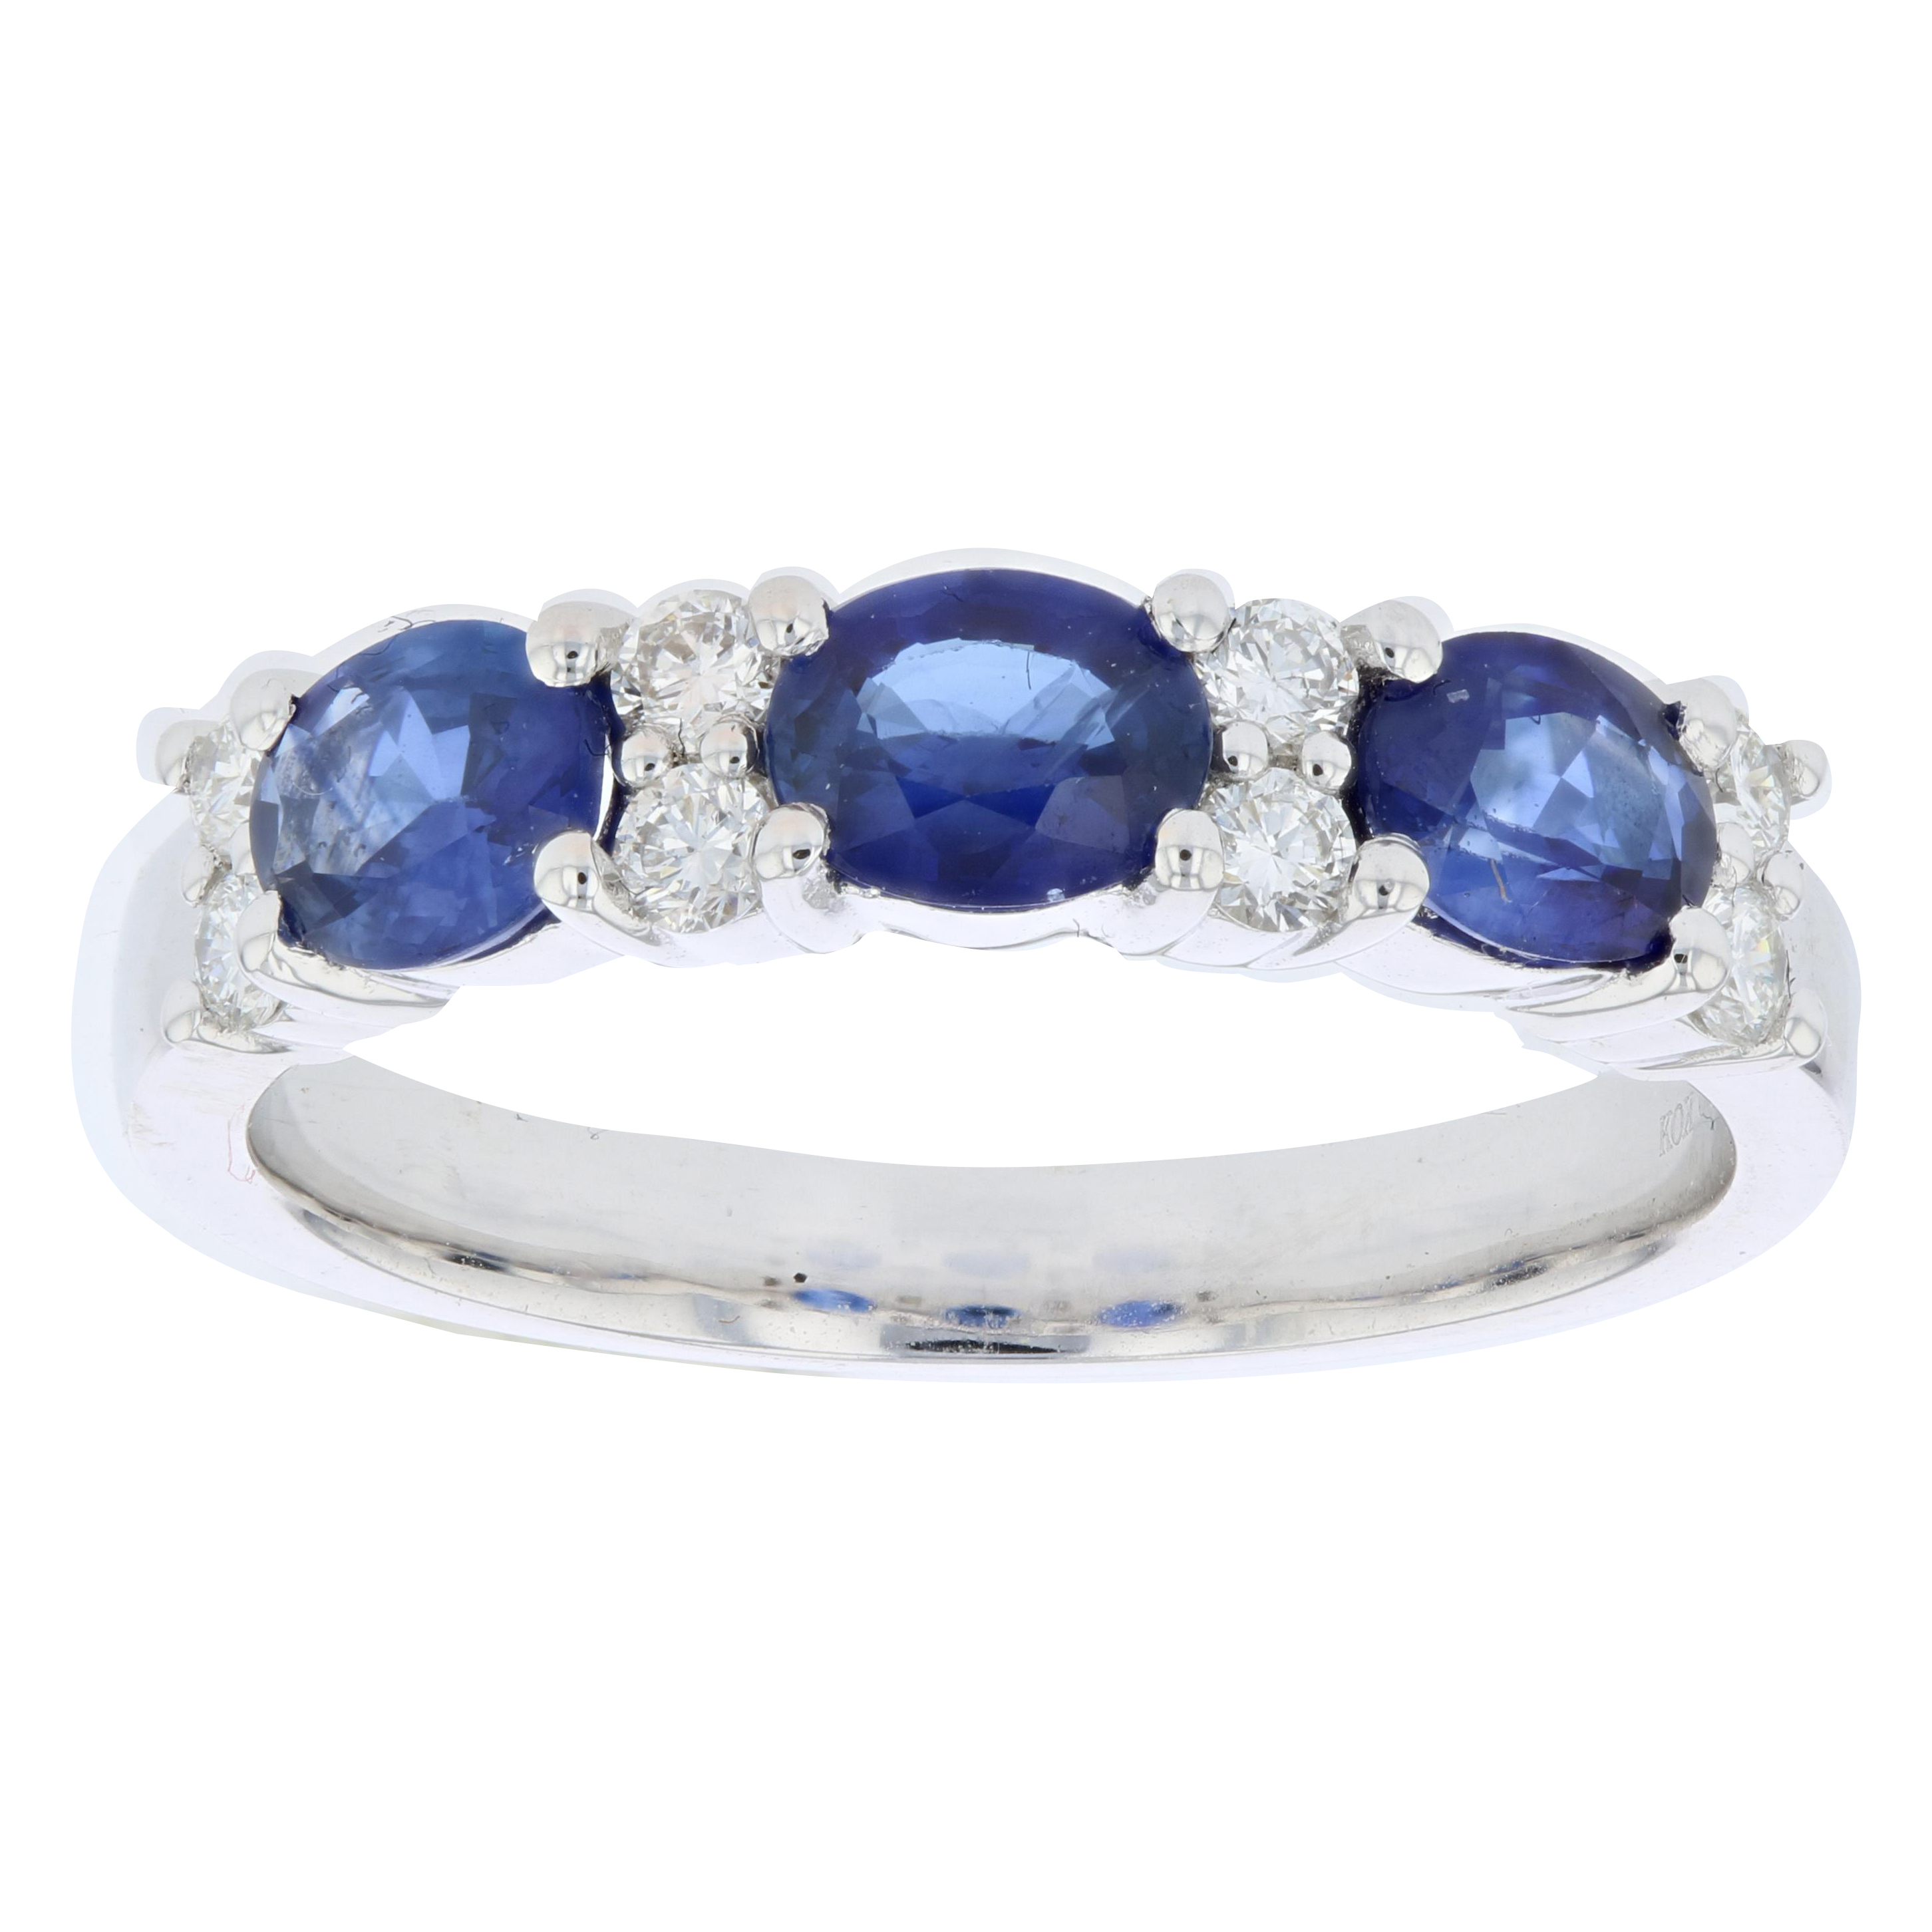 View 1.47ctw Diamond and Sapphire Band in 18k White Gold